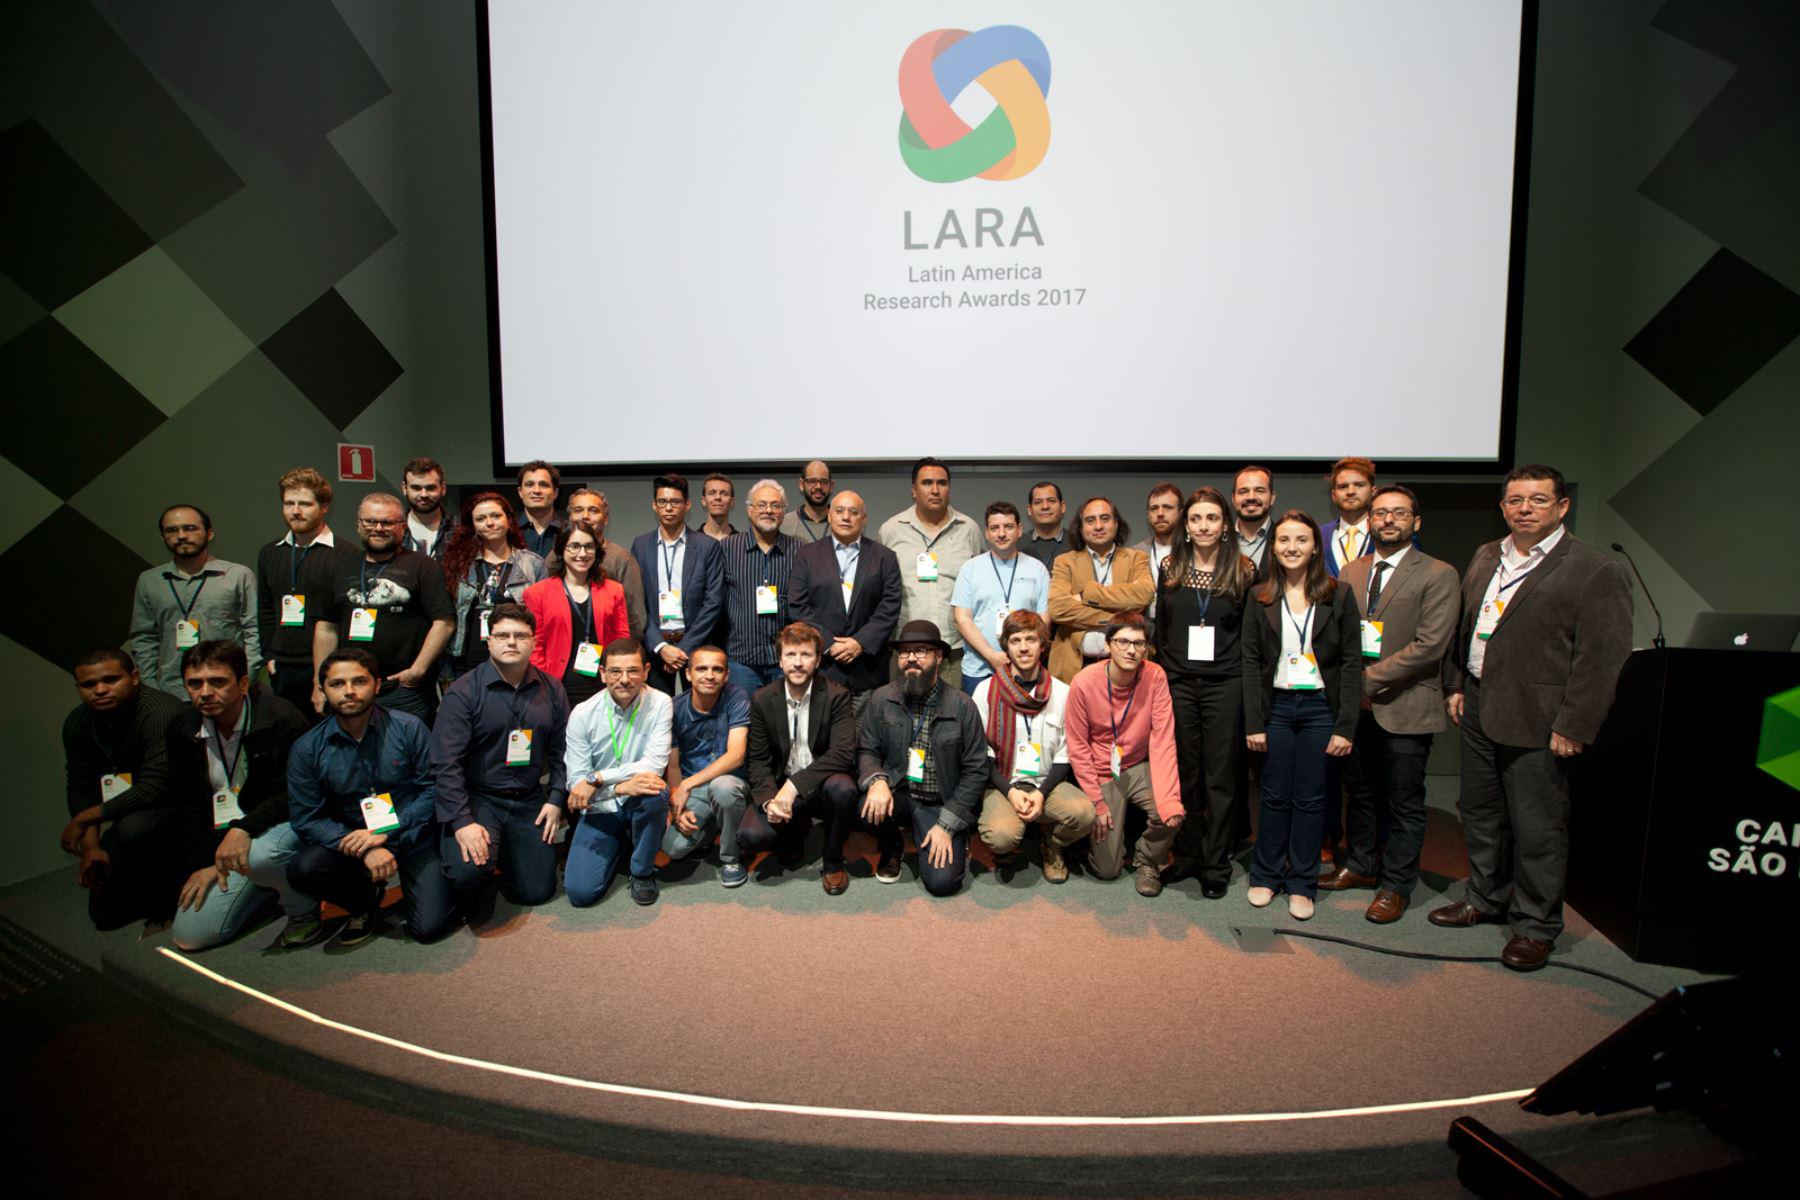 Foto de familia LARA Latin American Reaserch Google awards 2017